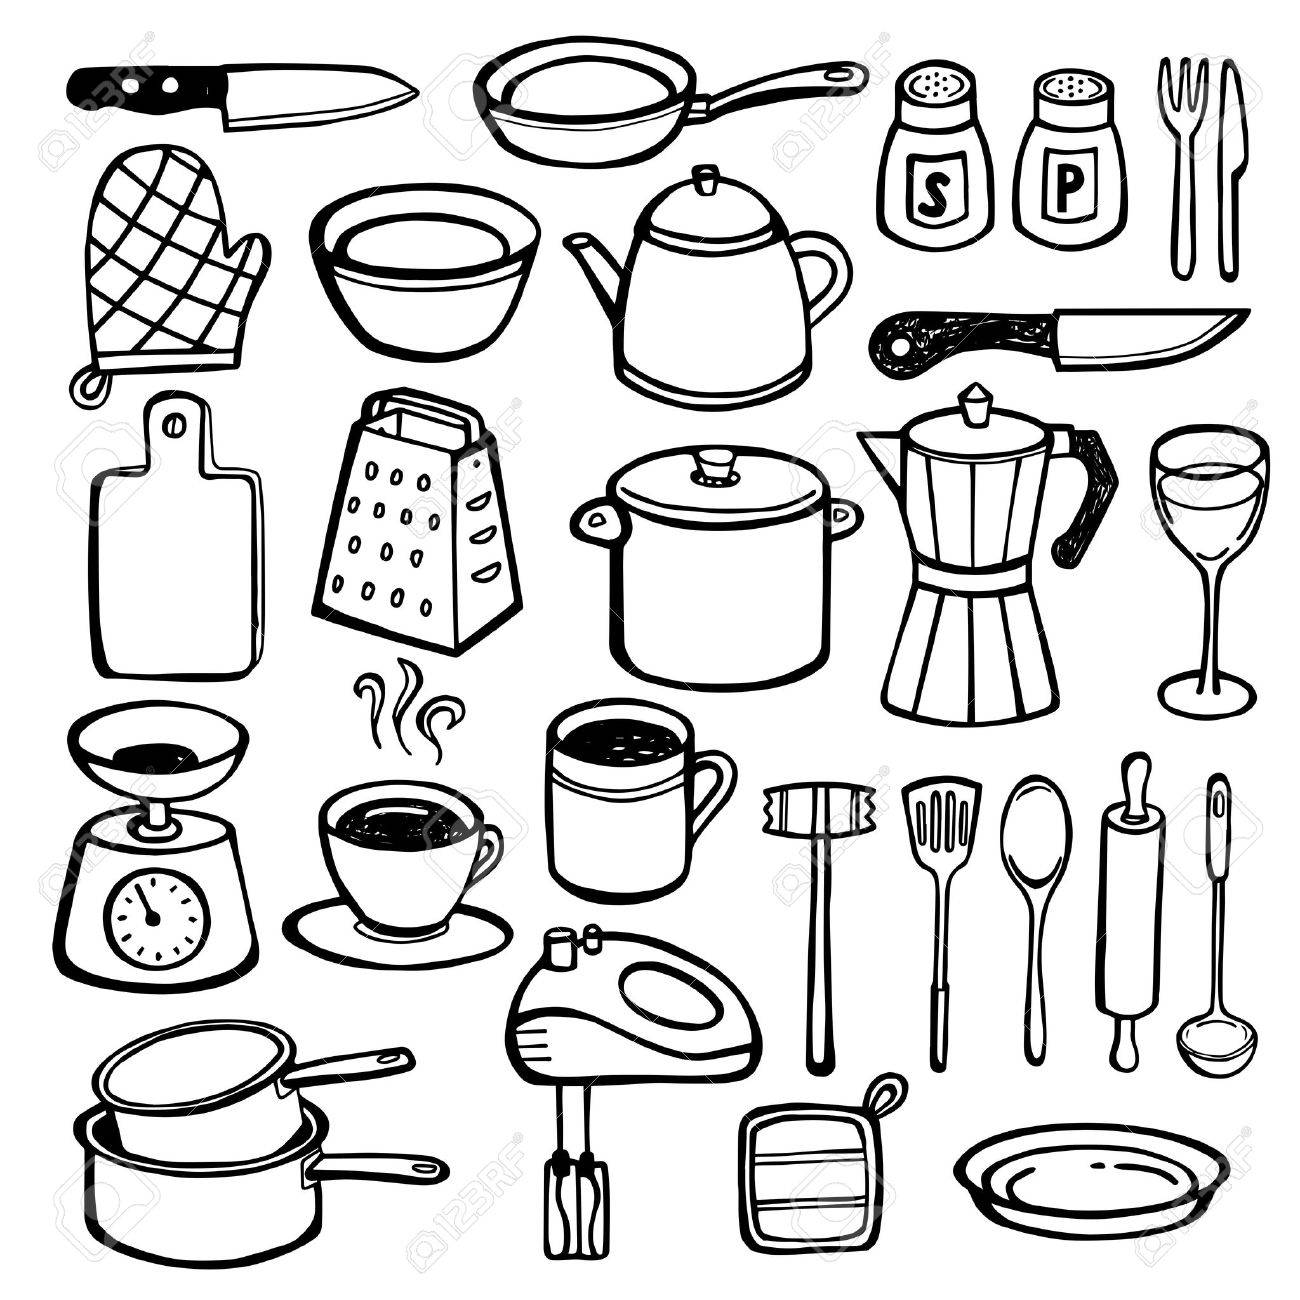 Perfect Wired On Coffee Clip Art Illustration - Electrical Diagram ...